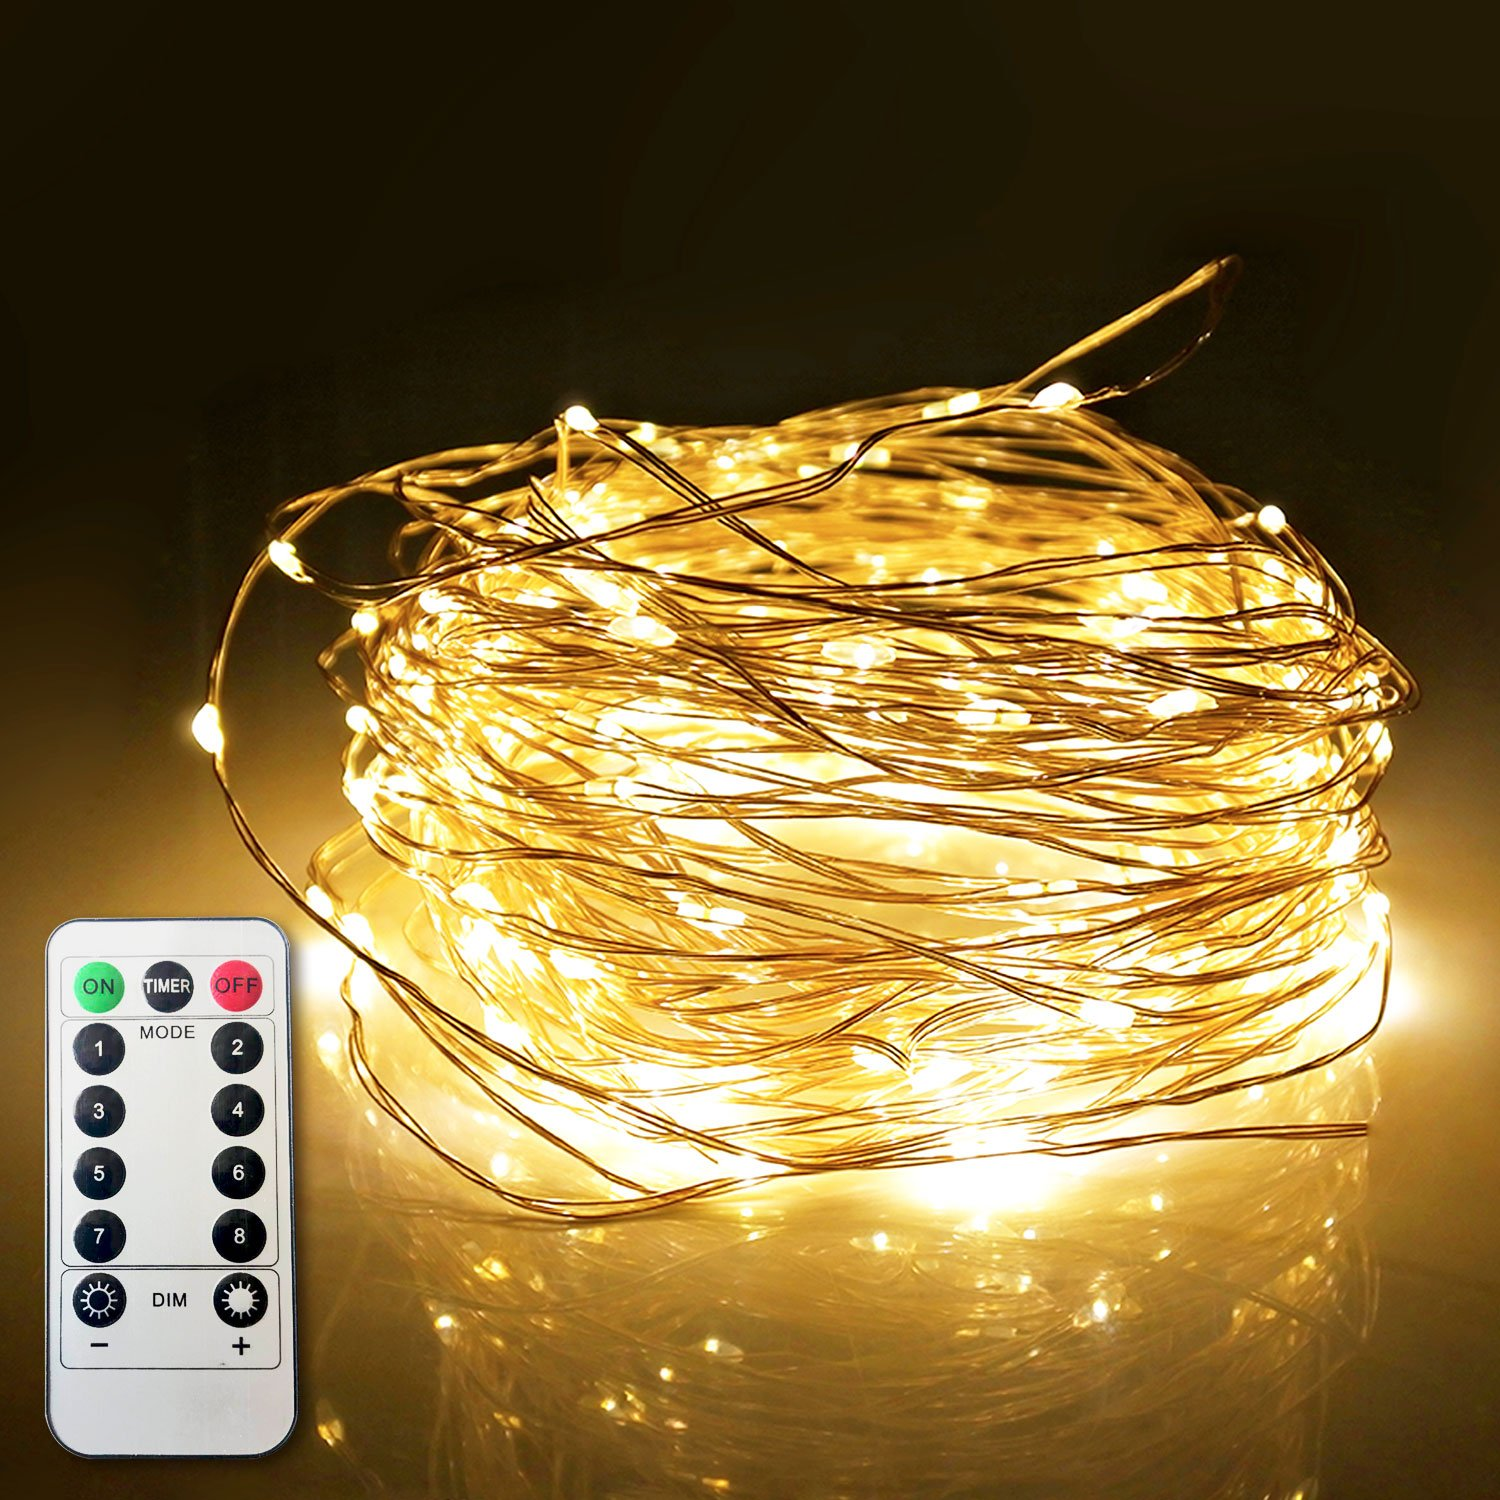 ETHINK 200 LED 65.6ft Auto Timer 8 Modes Remote Control Battery Operated Waterproof Dimmable Fairy String Copper Wire Lights for Christmas, Bedroom, Party, Patio, Wedding, Warm White (200LED)